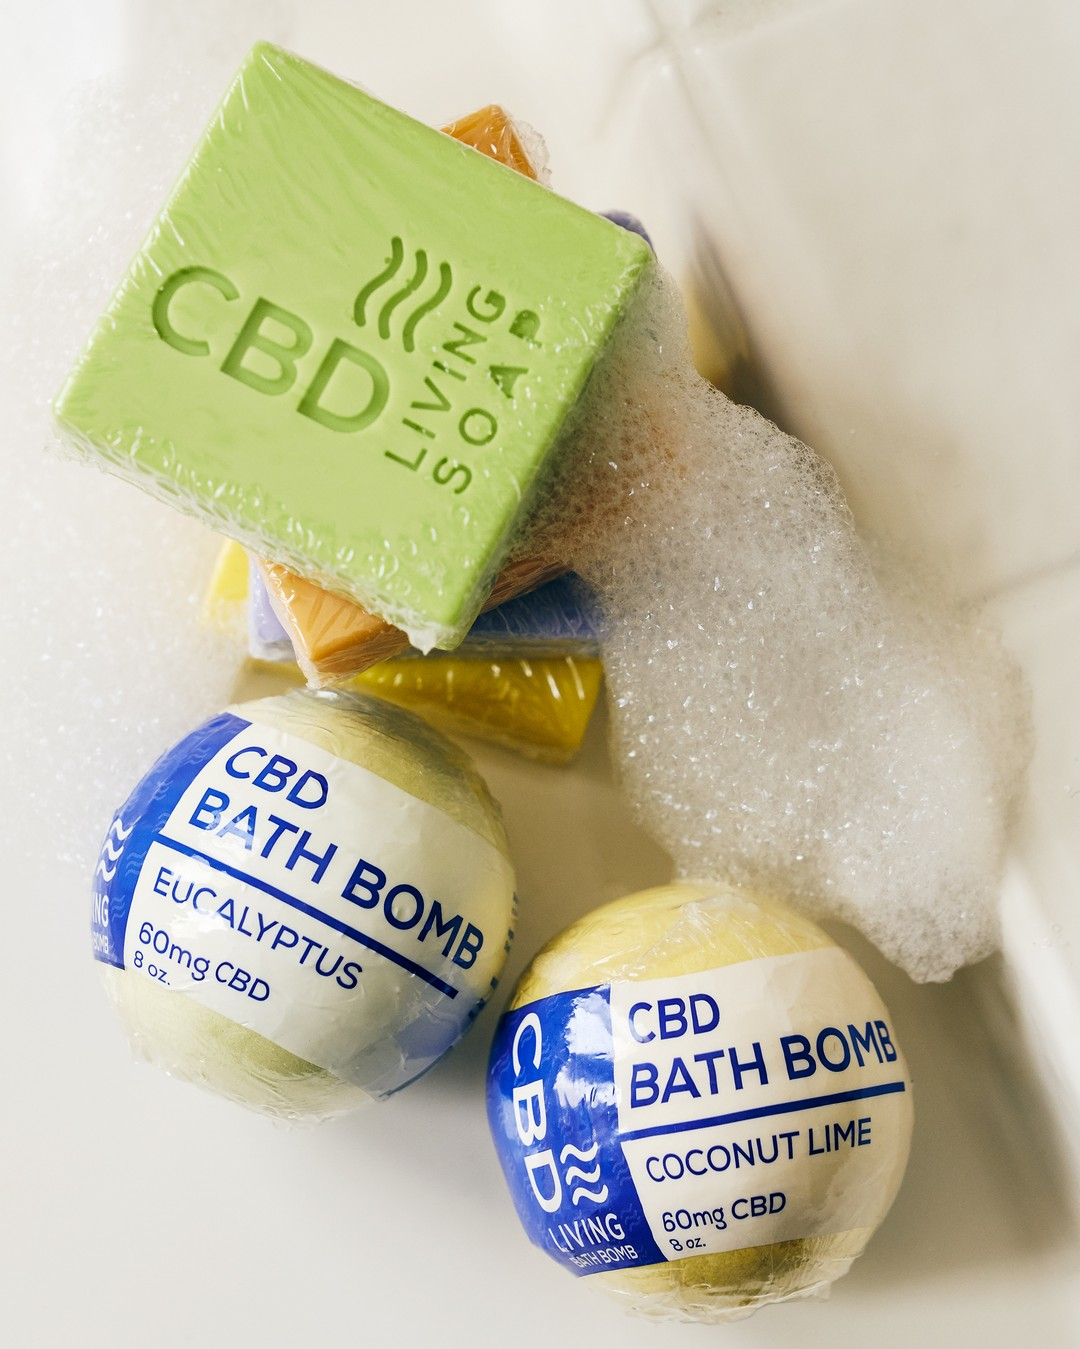 Image taken by cbdlivingwater of CBD Living Bath Bomb 100 mg Eucalyptus